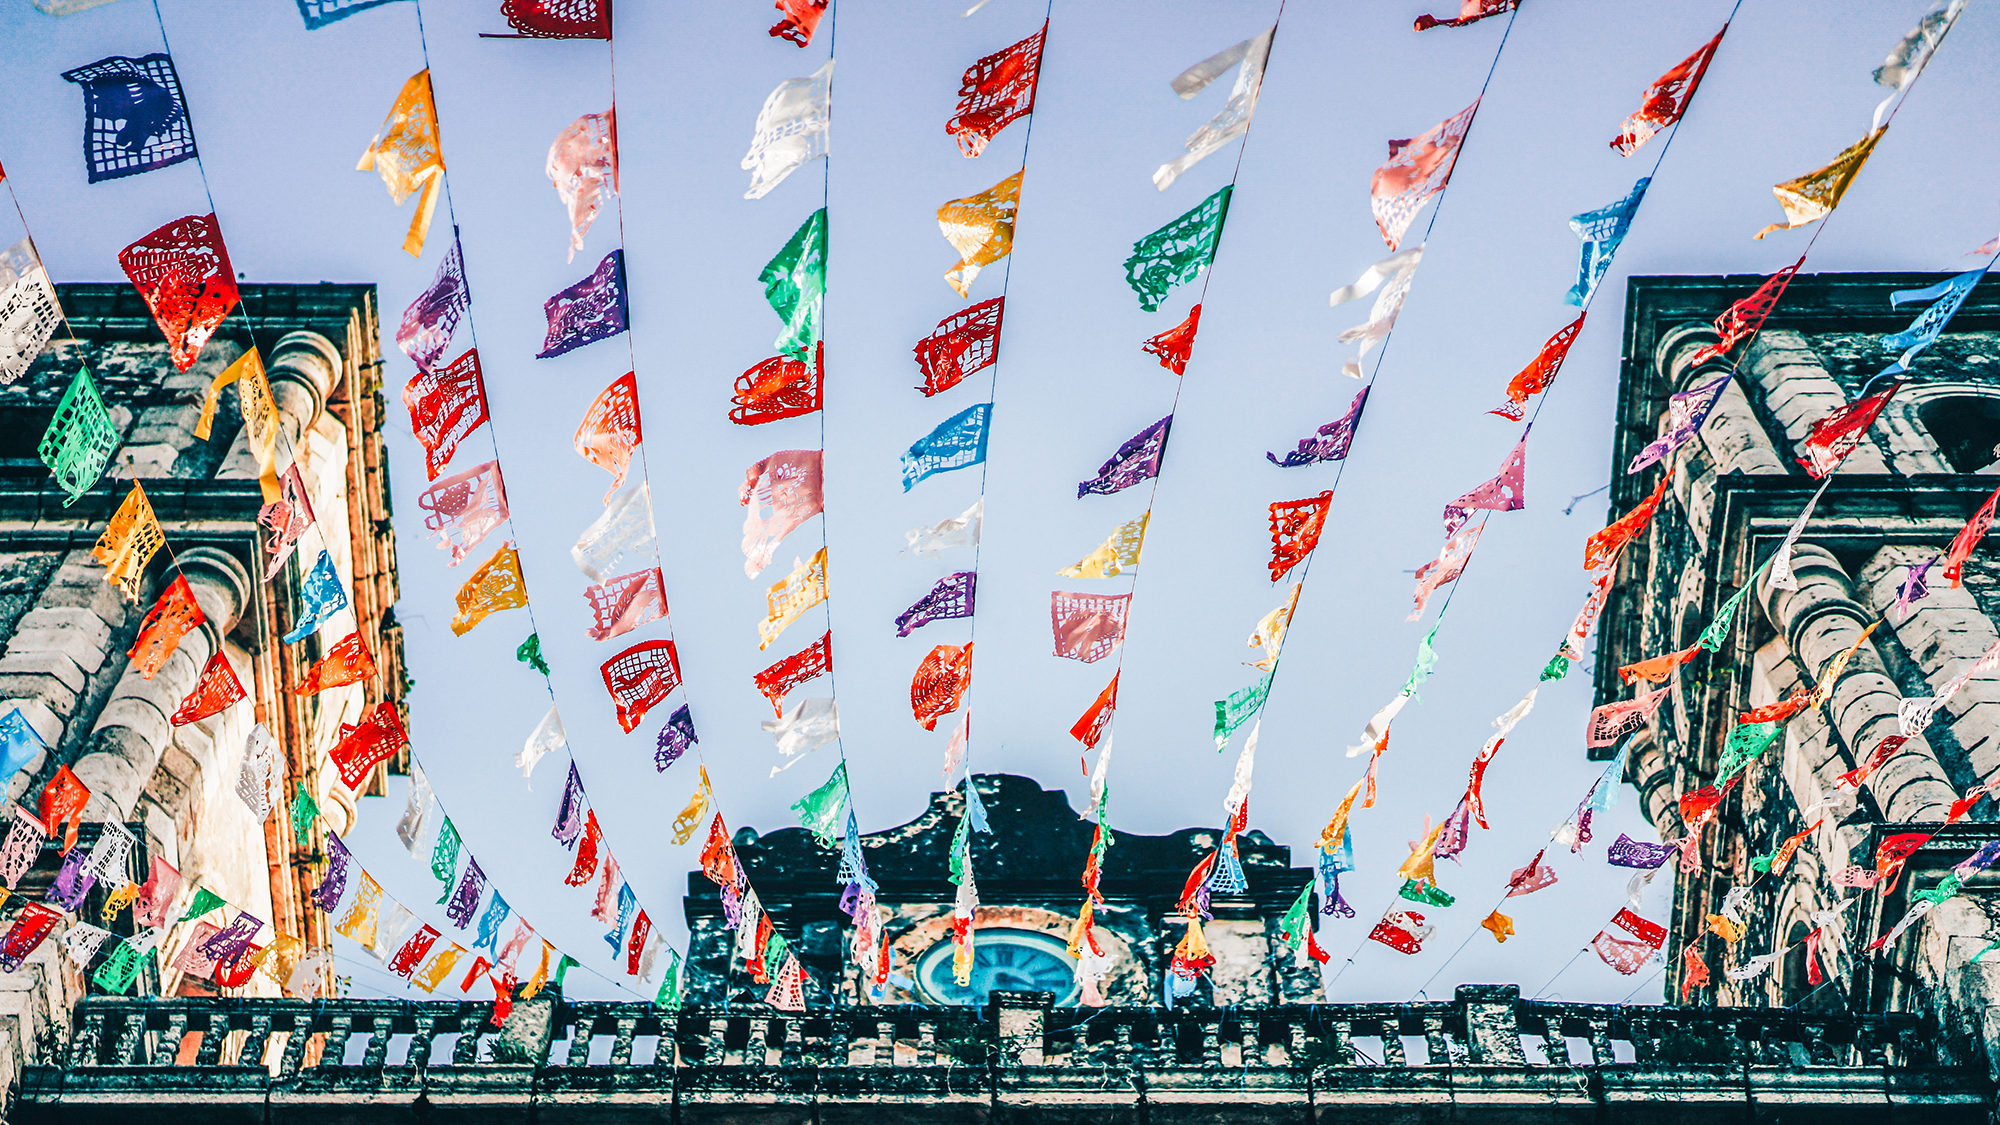 image of flags above street